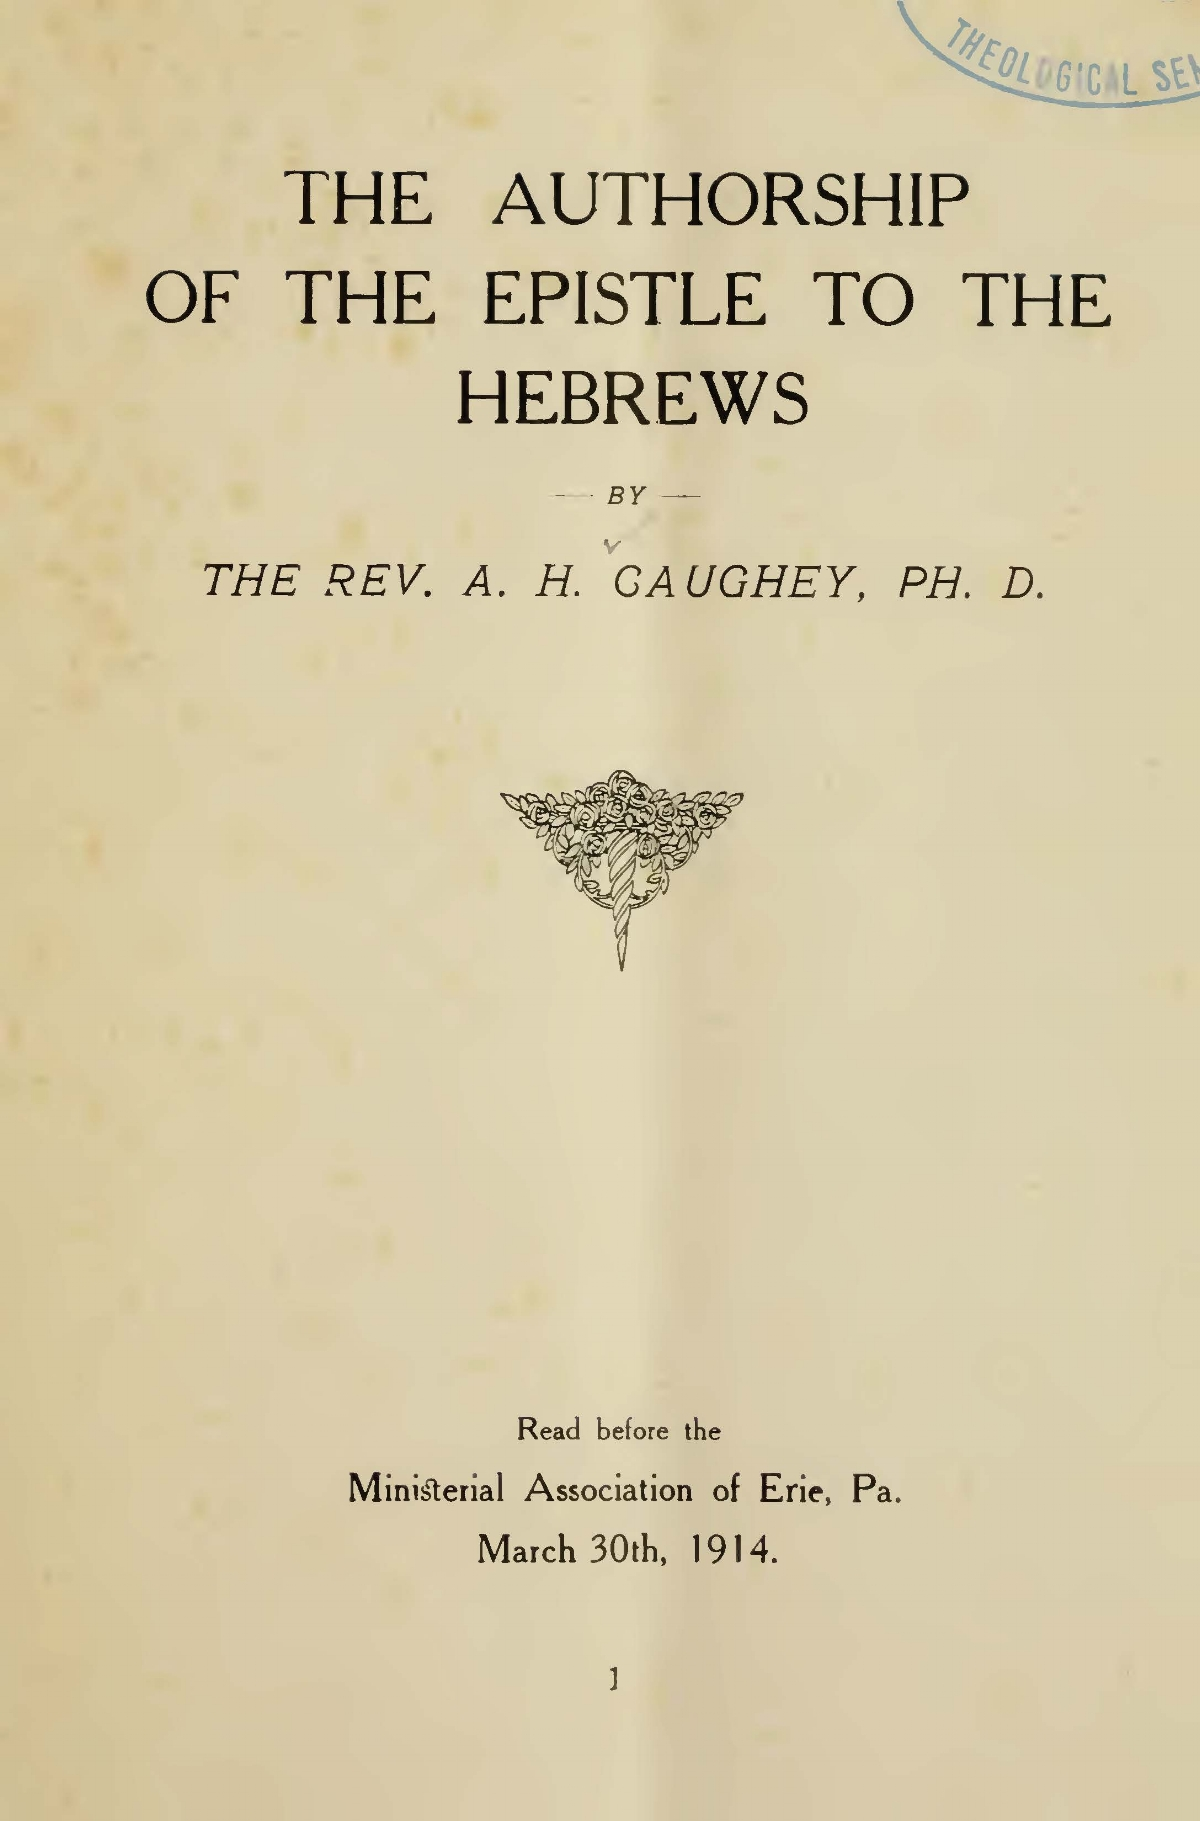 Caughey, Andrew Hervey, The Authorship of the Epistle to the Hebrews Title Page.jpg